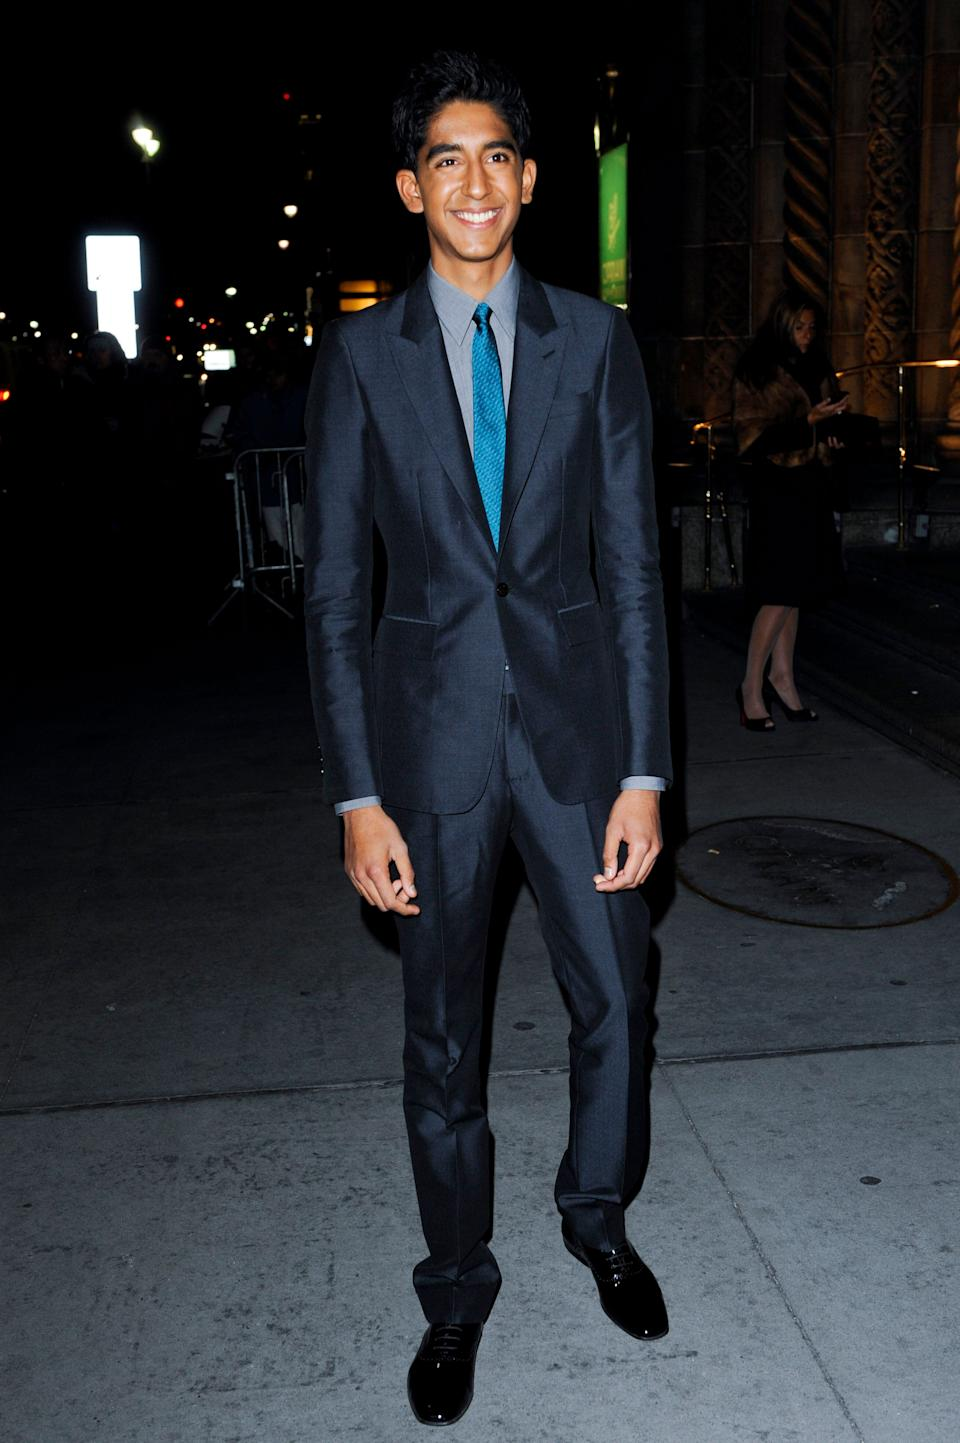 Patel attends at the National Board Of Review Awards Gala at Cipriani in New York City on Jan. 14, 2009.